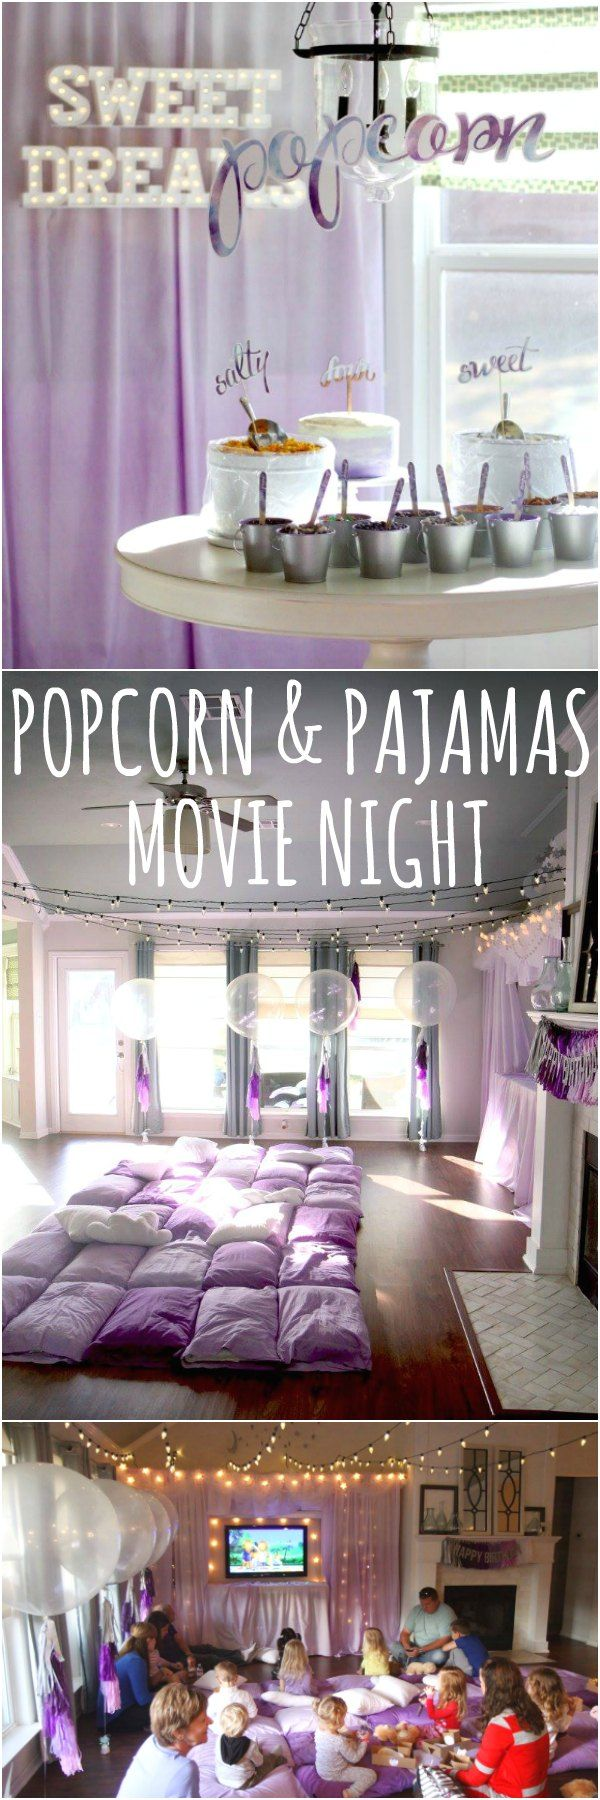 Cutest POPCORN & PAJAMAS movie night birthday party for kids a little too young for sleepovers. Favors were flashlights and teddy bears. Too cute!